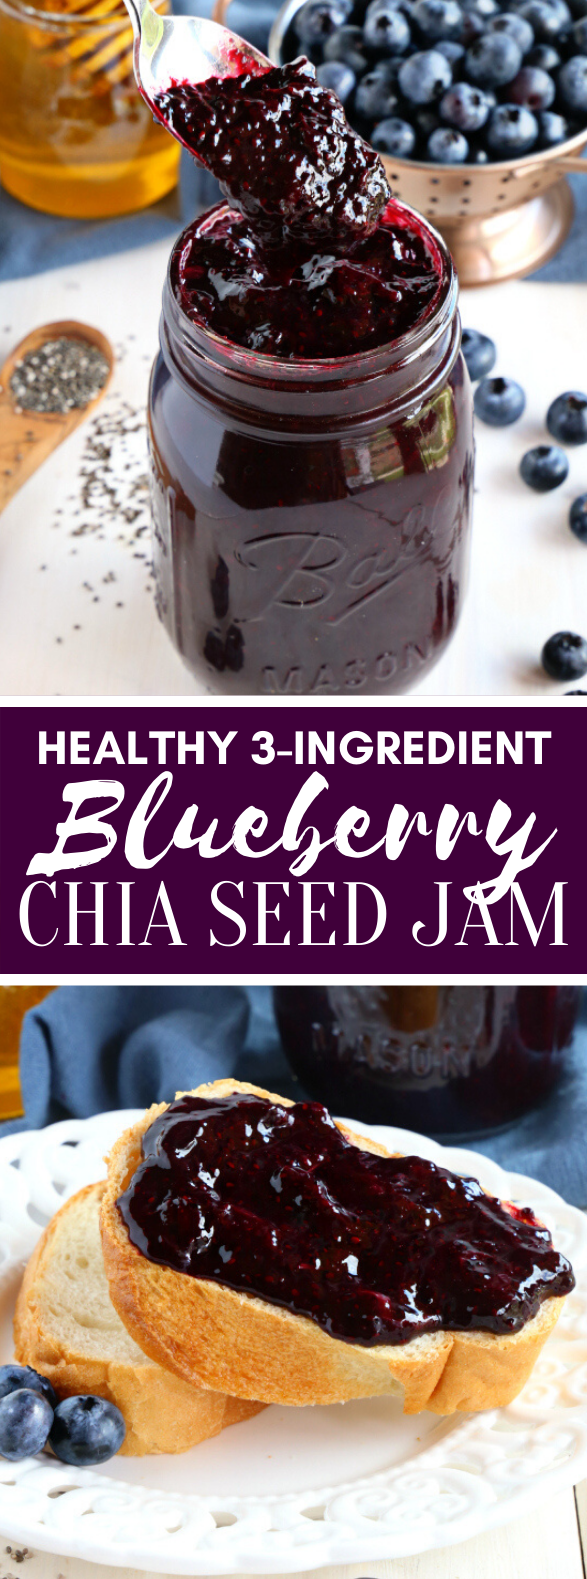 3-INGREDIENT BLUEBERRY CHIA SEED JAM #healthy #wholefood